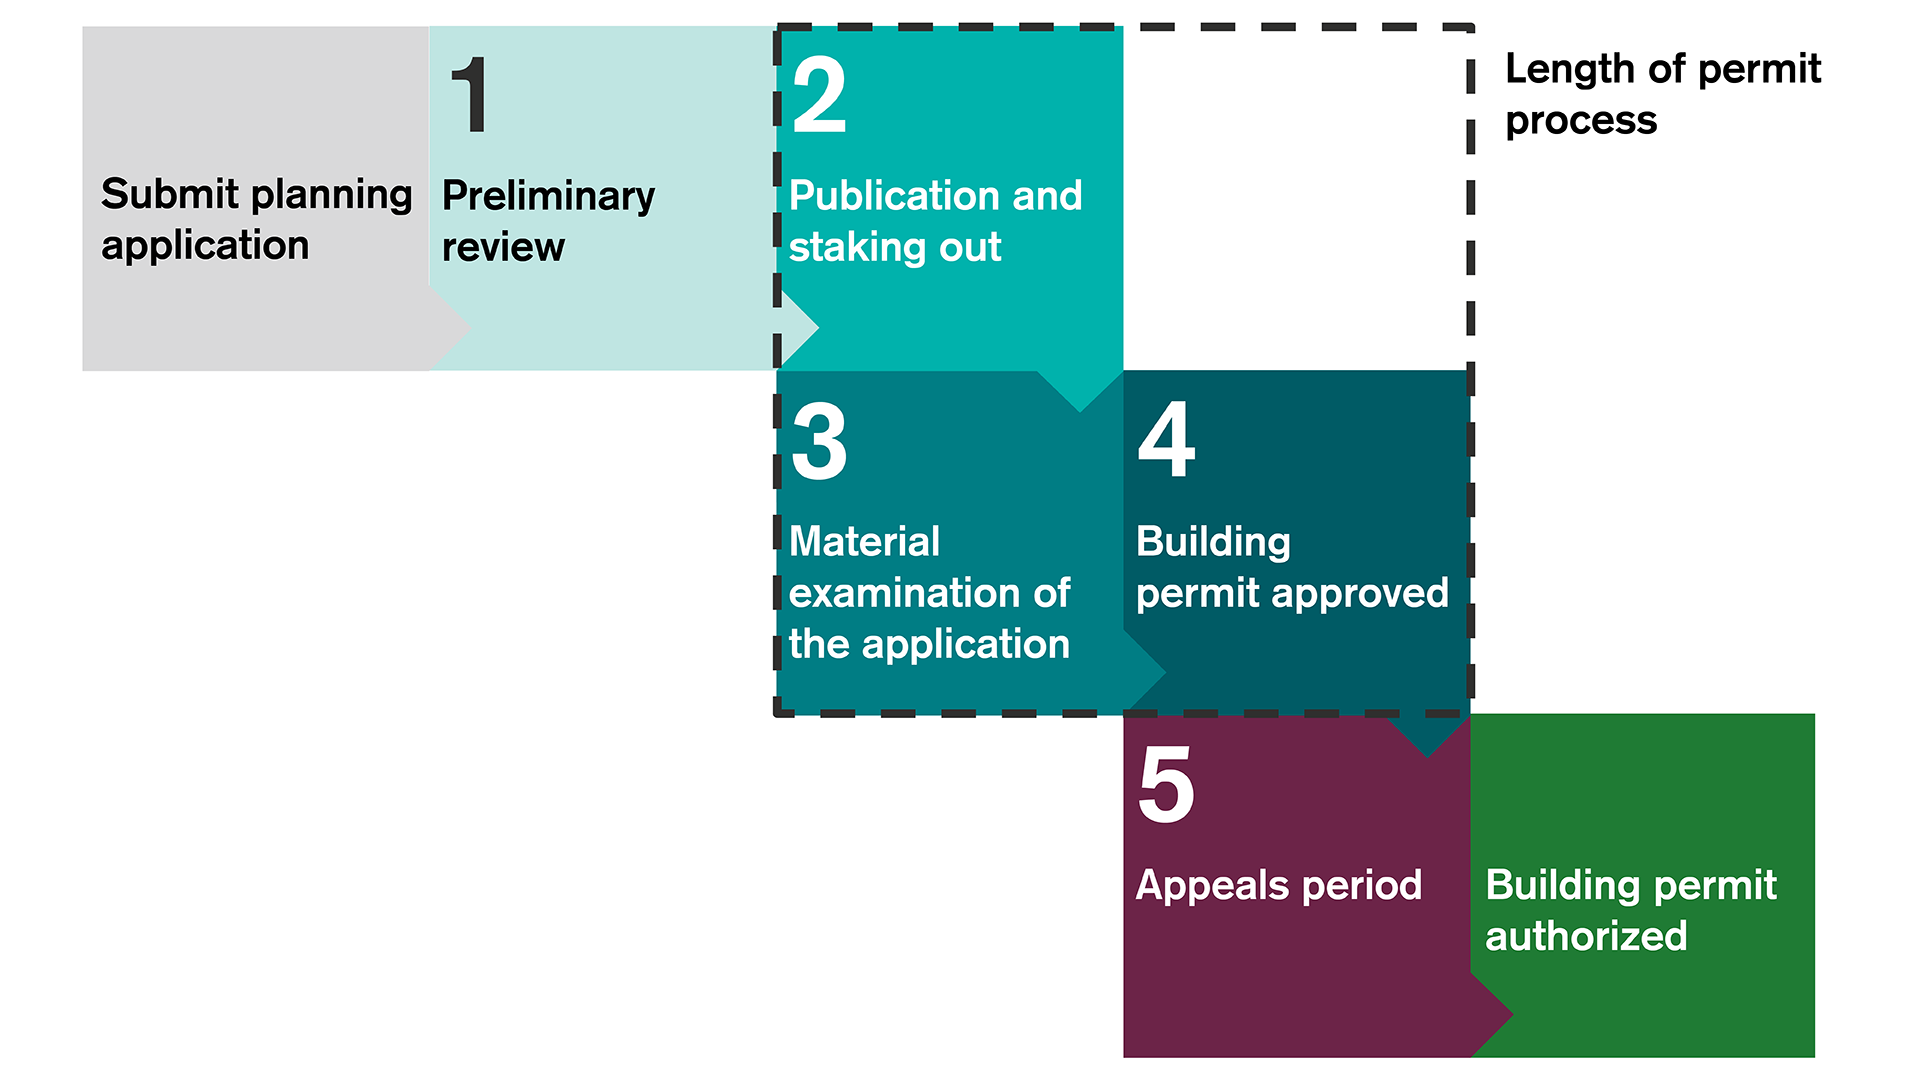 The building permit process has five steps